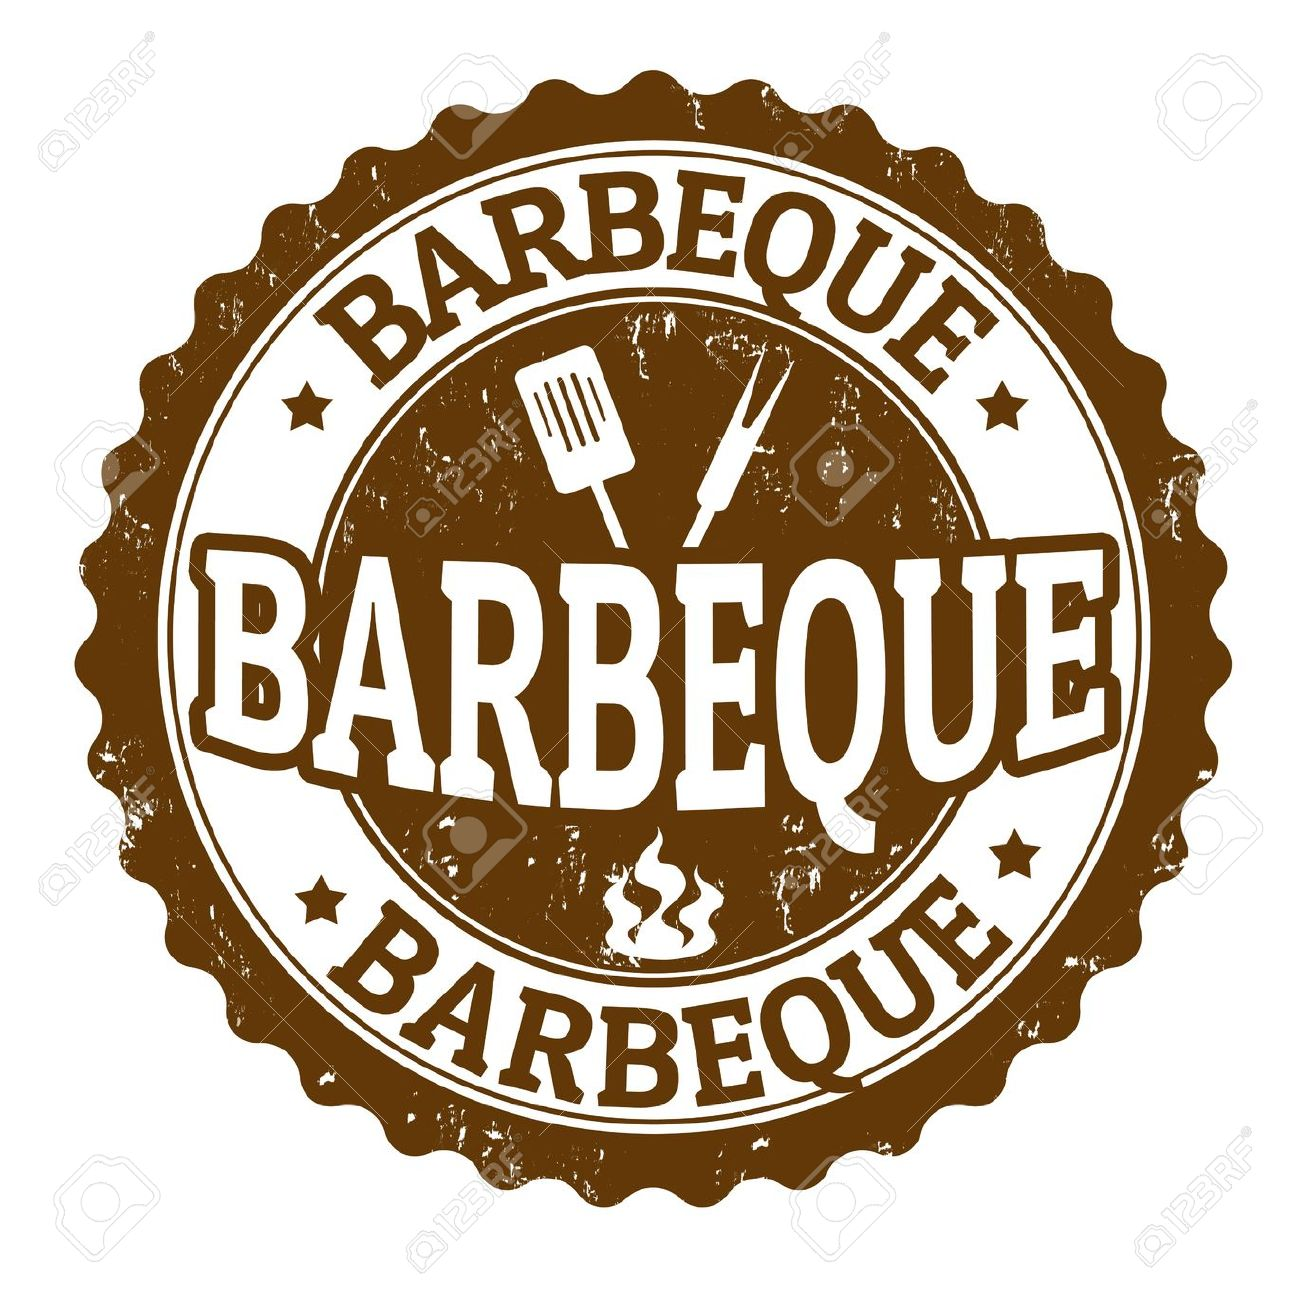 Free BBQ Clipart, Download Free Clip Art, Free Clip Art on.